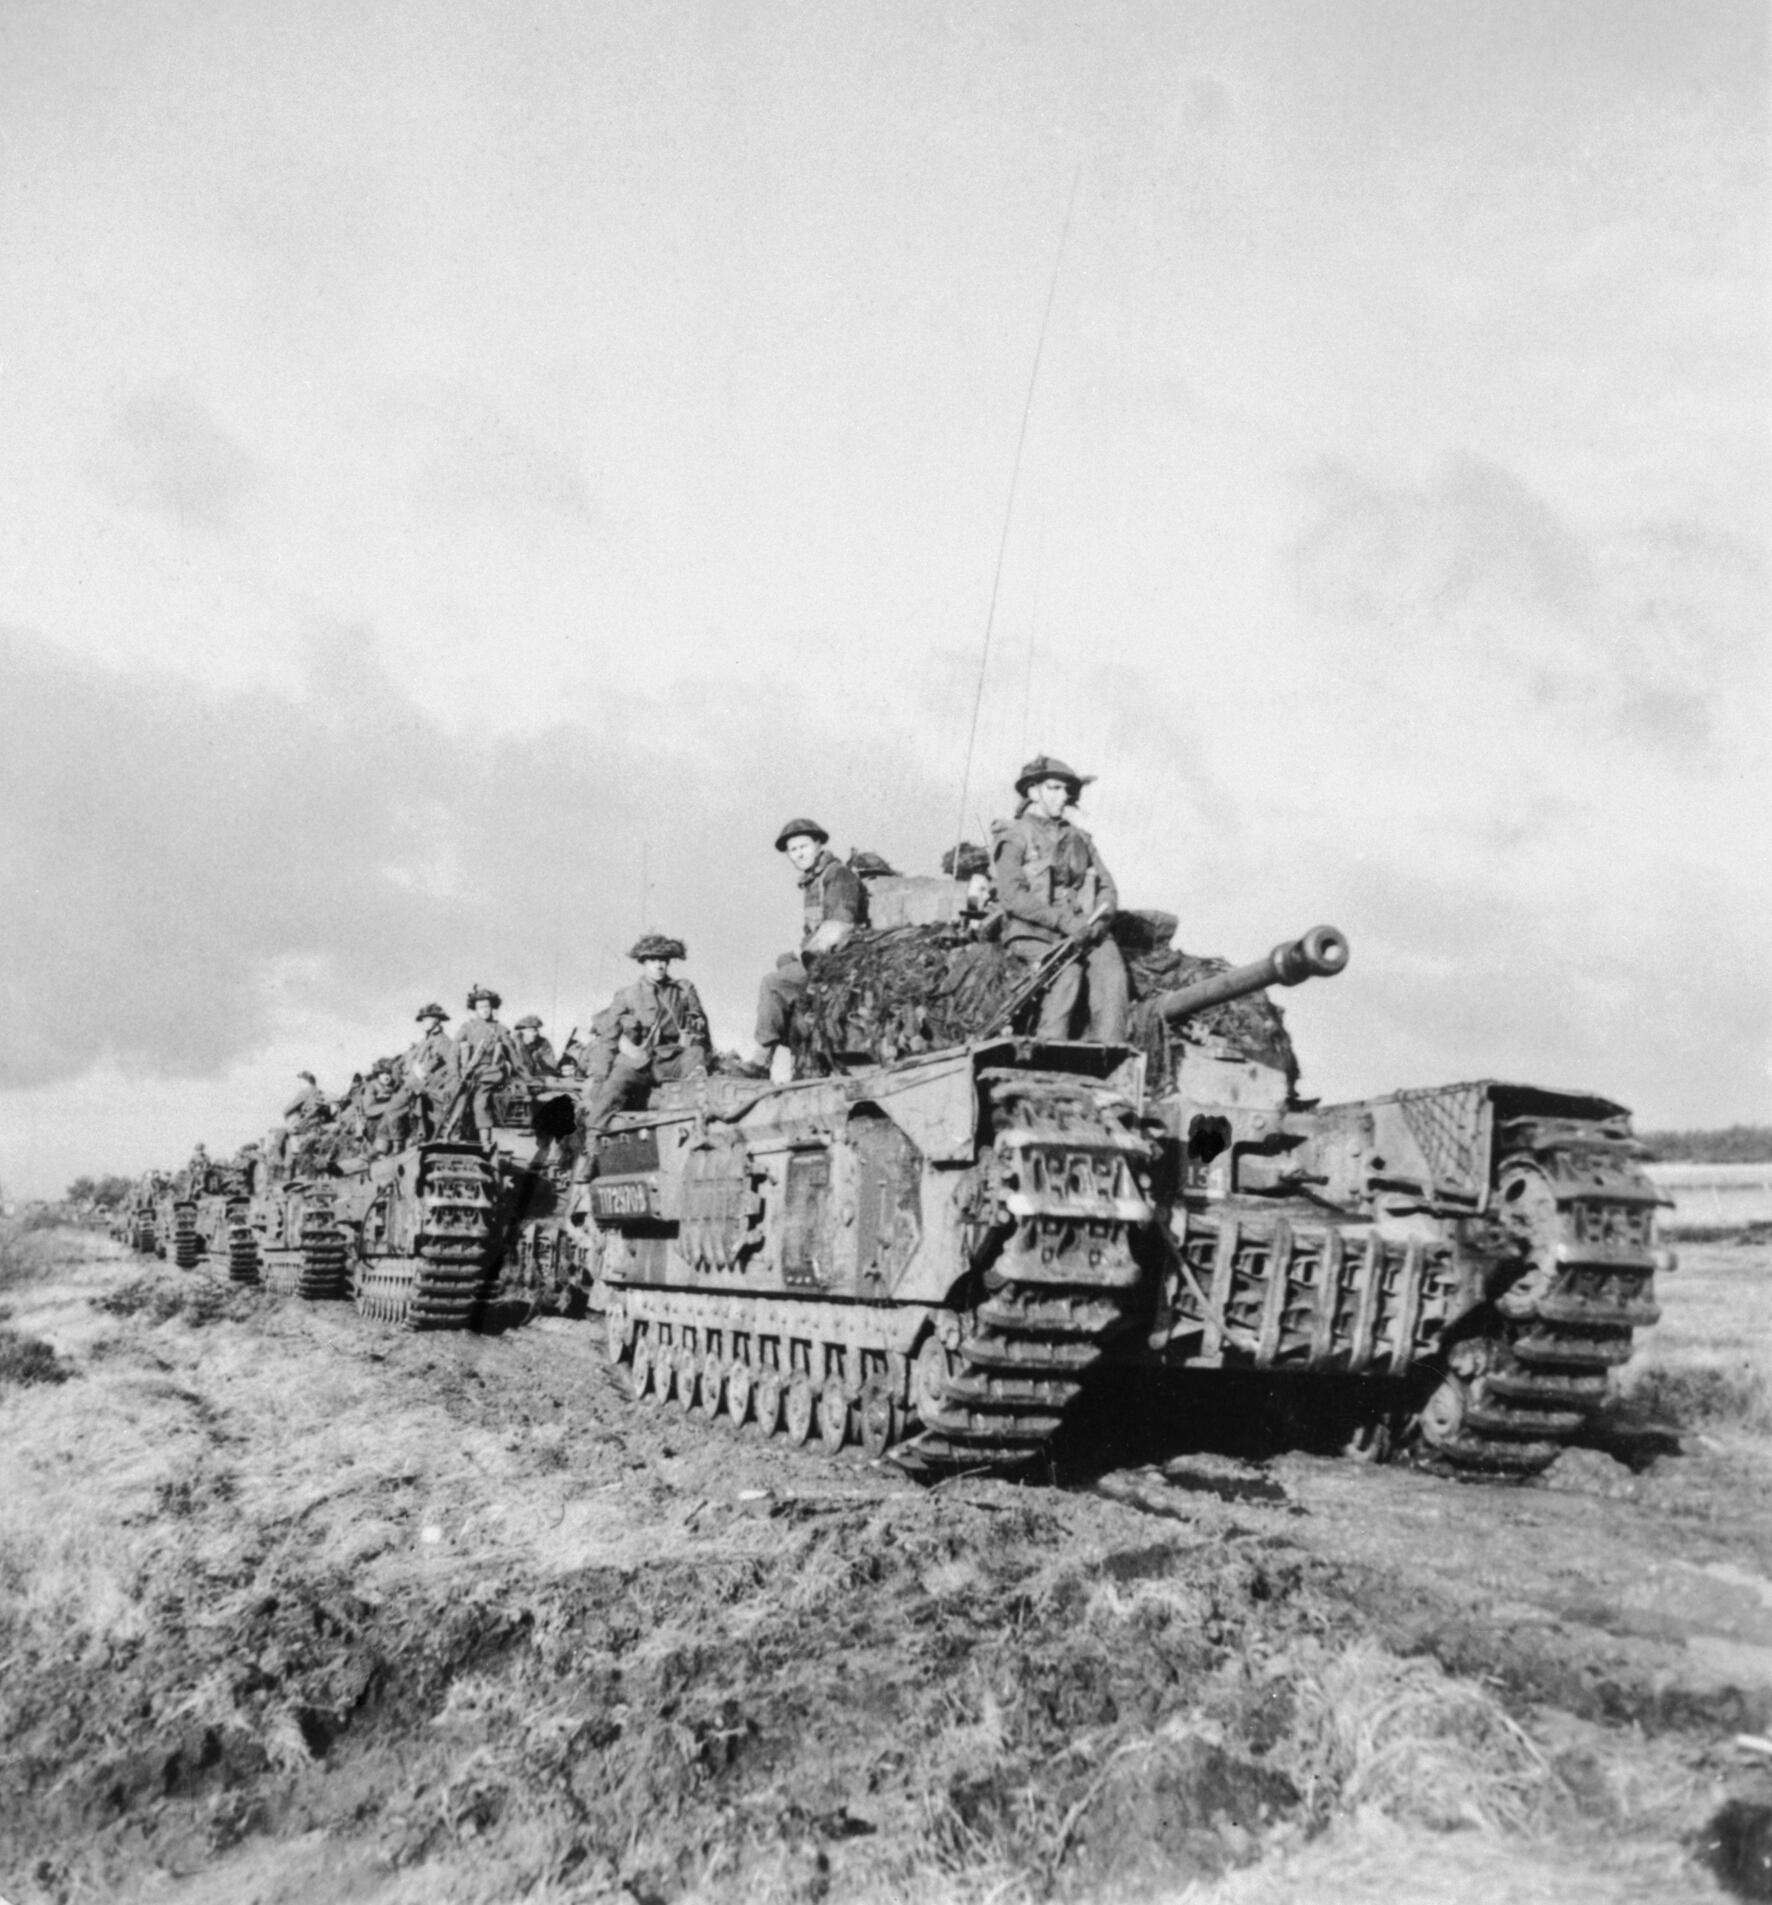 3 Scots Guards - Churchill tks w inf 2A&SH adv nr Beringe, Holland, 22 Nov 44 - B12026 [Norris] kopie 2